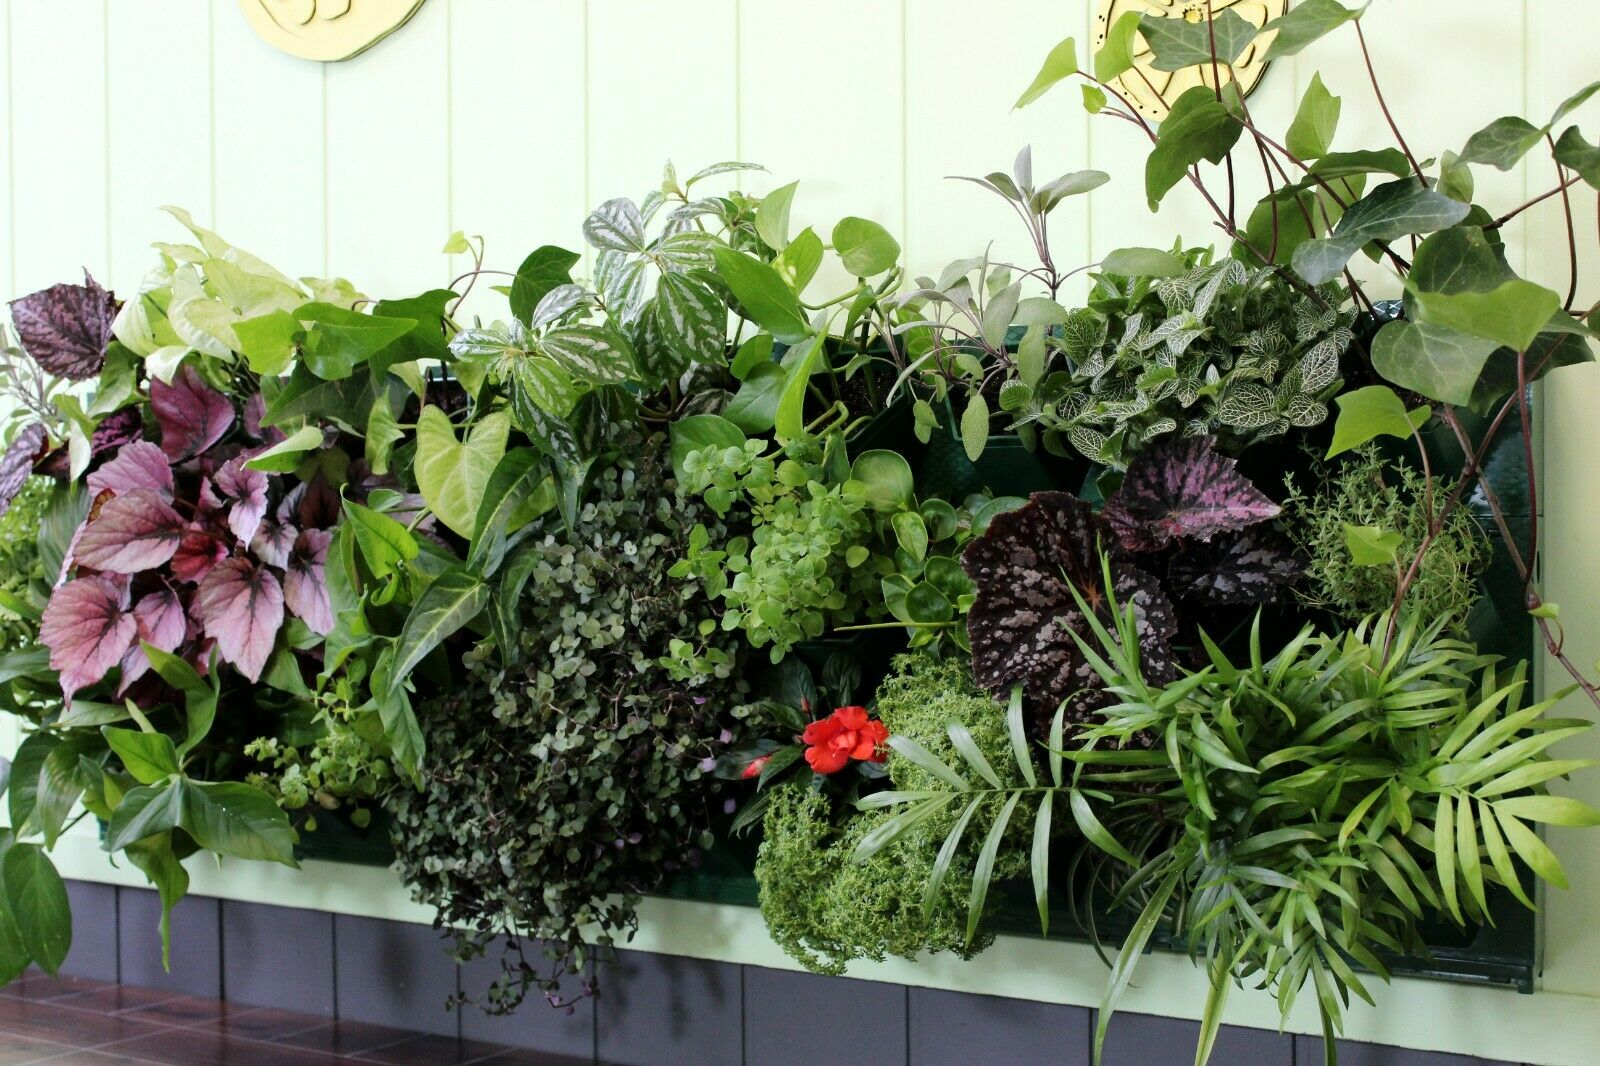 Self Watering Planter For Vertical Gardens Indoor Outdoor Wall Decor Kit For Sale Online Ebay